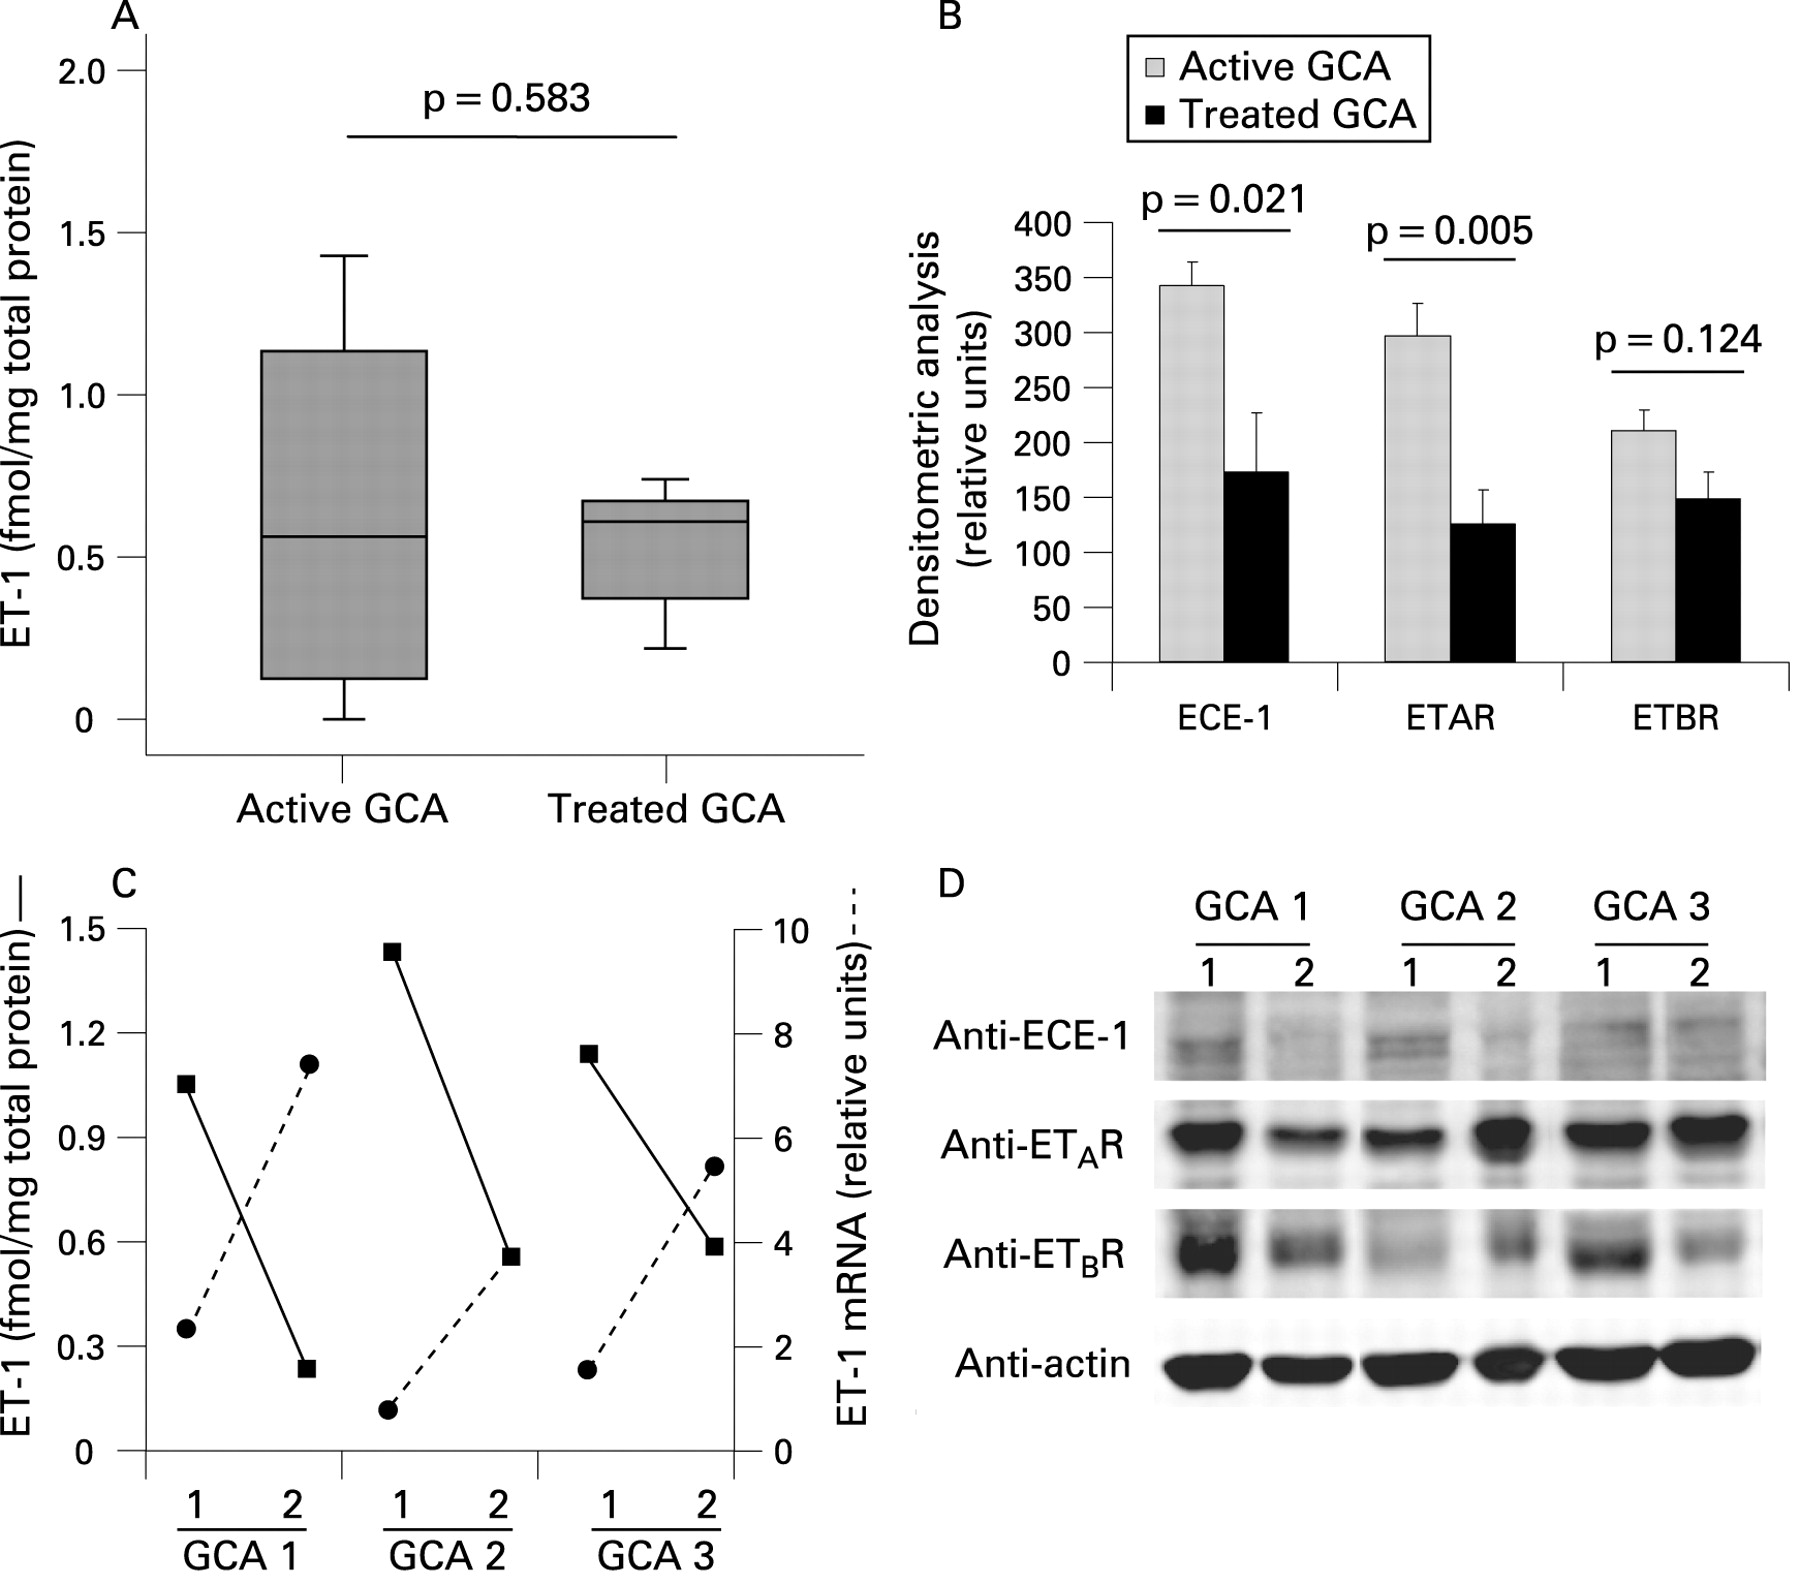 Increased Expression Of The Endothelin System In Arterial Lesions